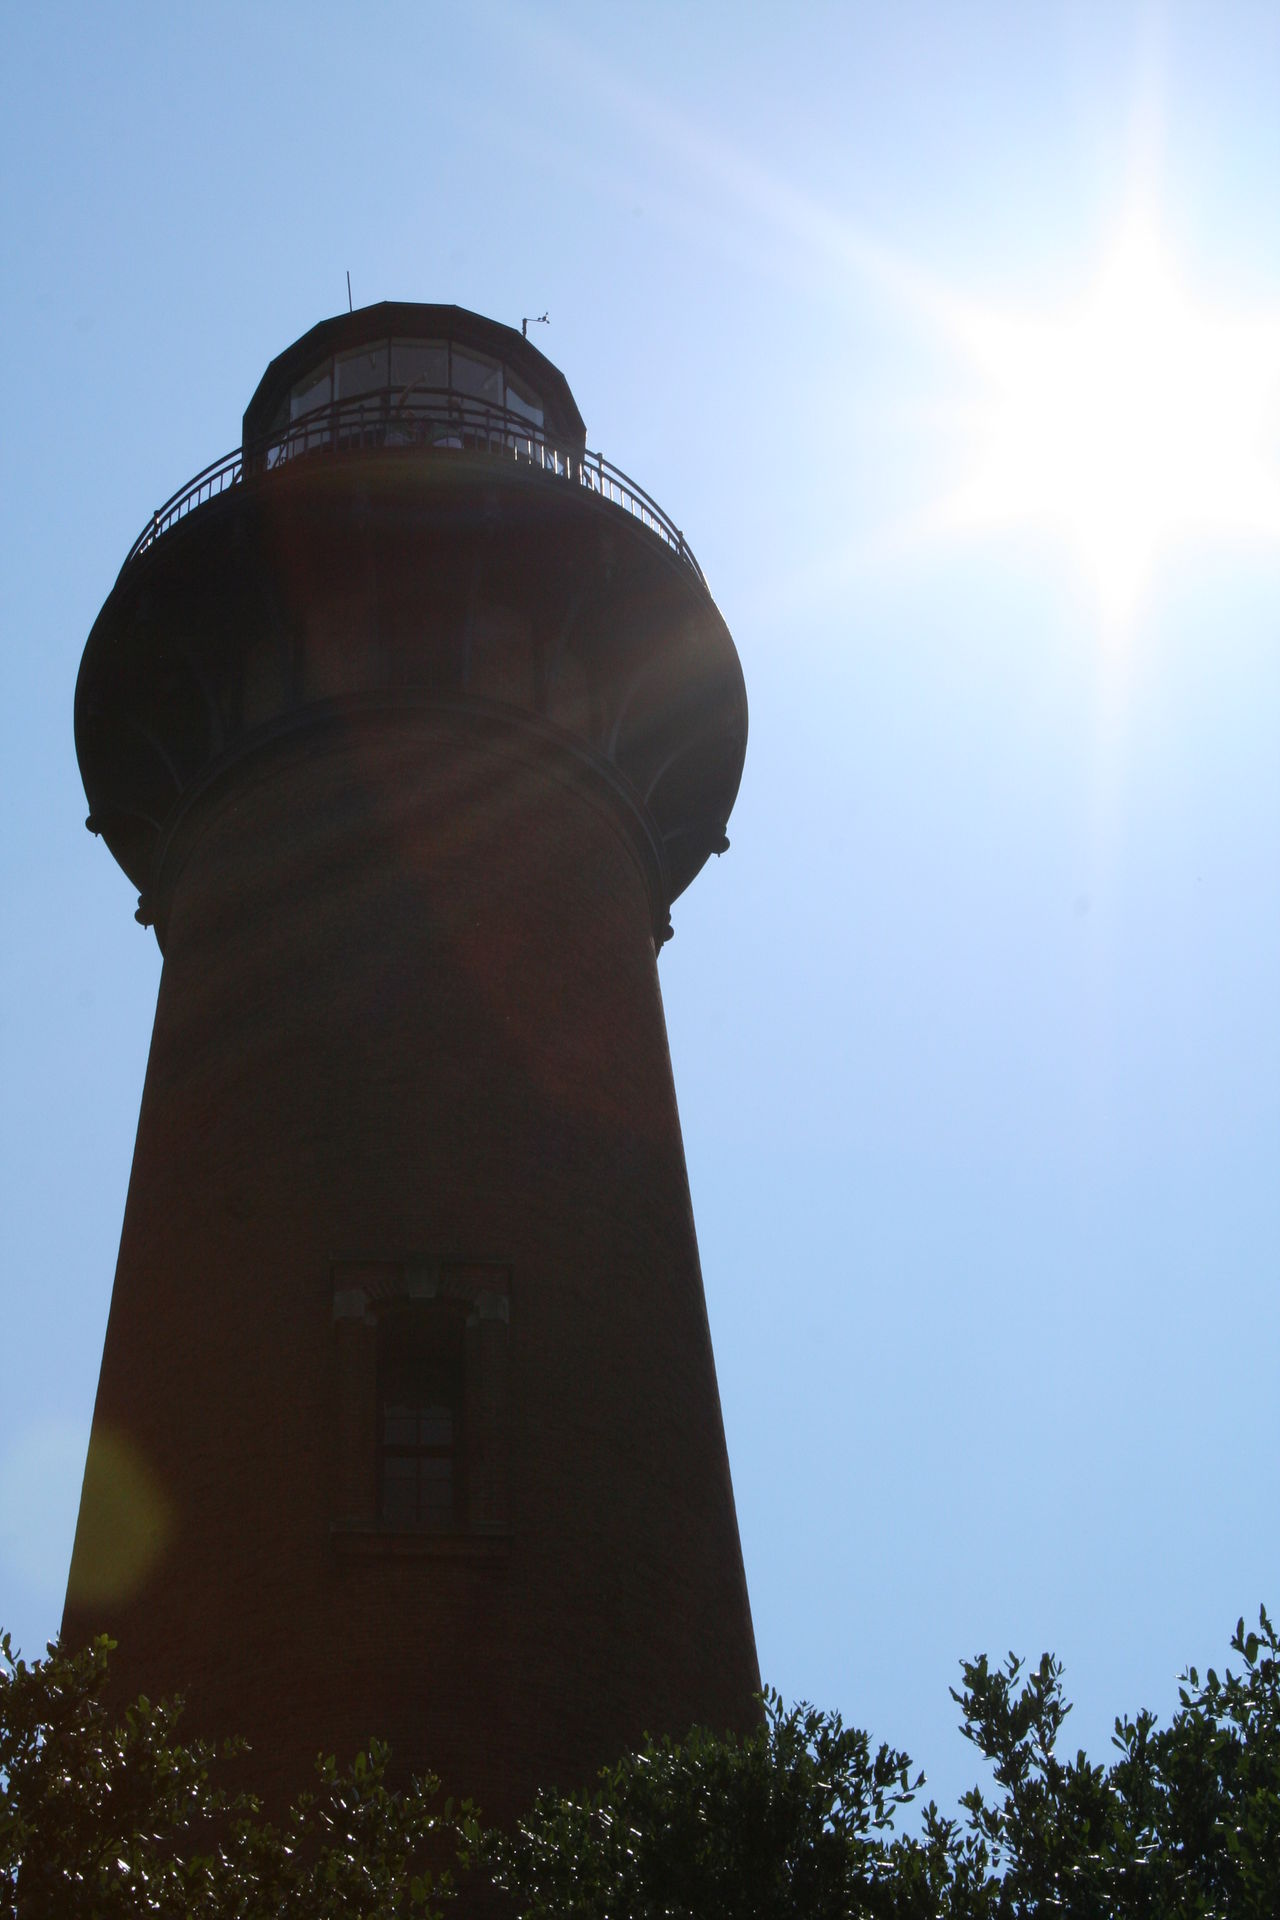 Built Structure Clear Sky Currituck Beach Lighthouse High Noon High Sun Lighthouse OBX Outer Banks Sunlight ☀ Tower